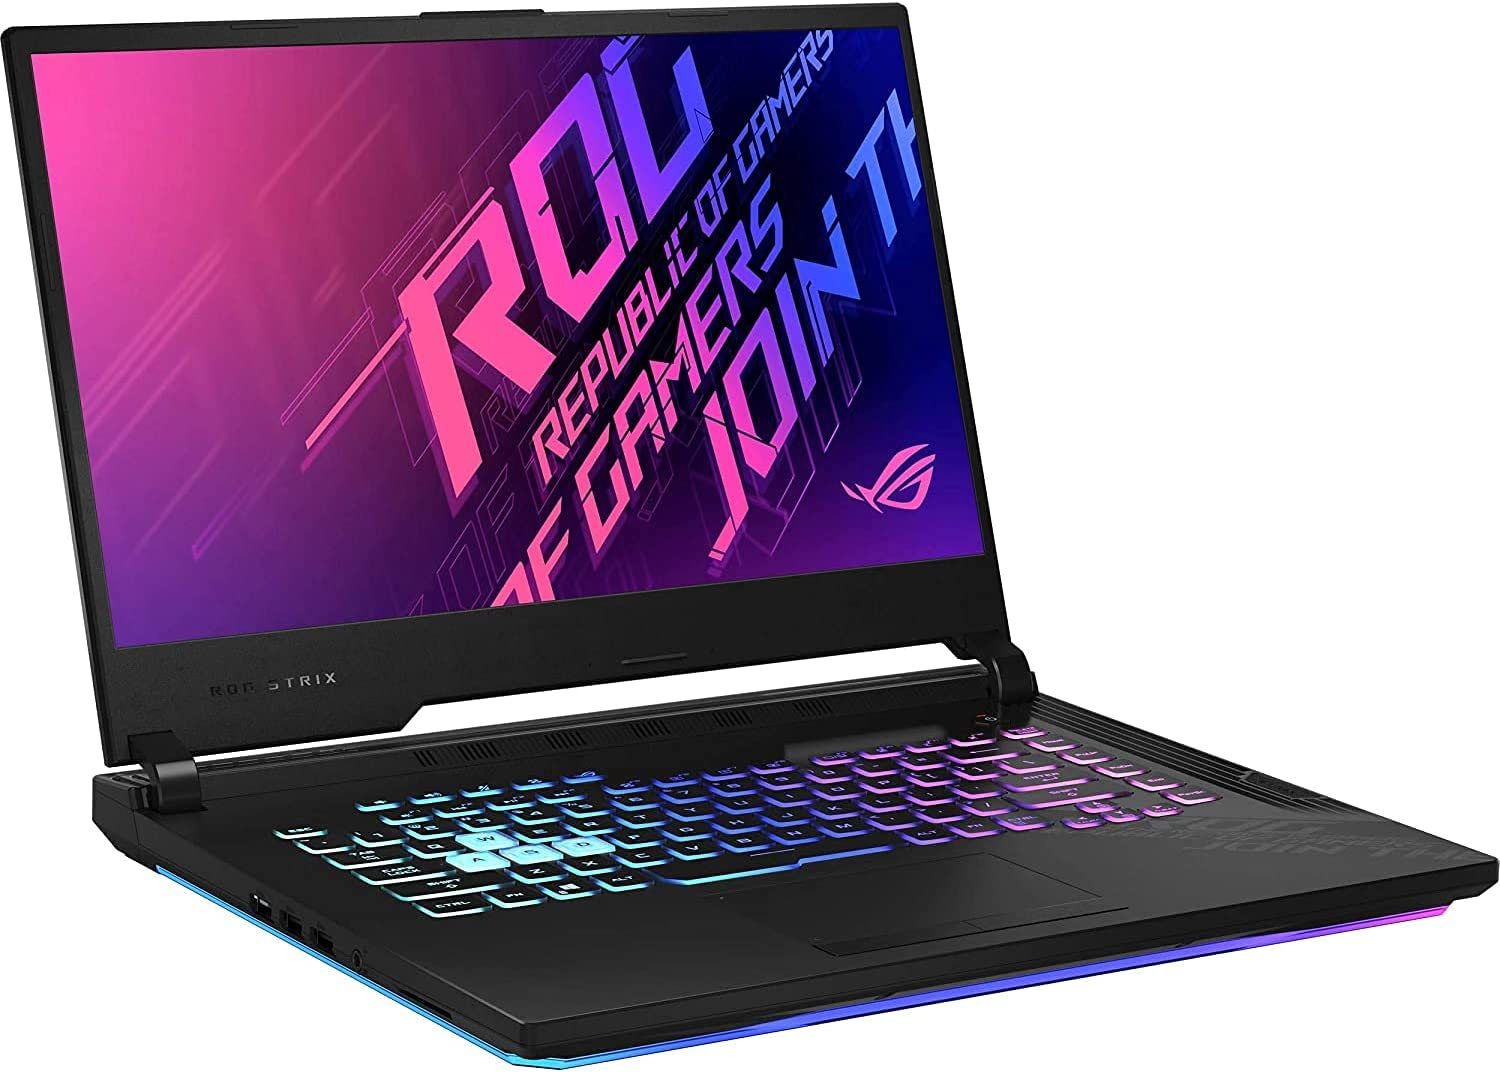 10 Best Laptops For Adobe After Effects in 2021 [Lag-Free Experience]